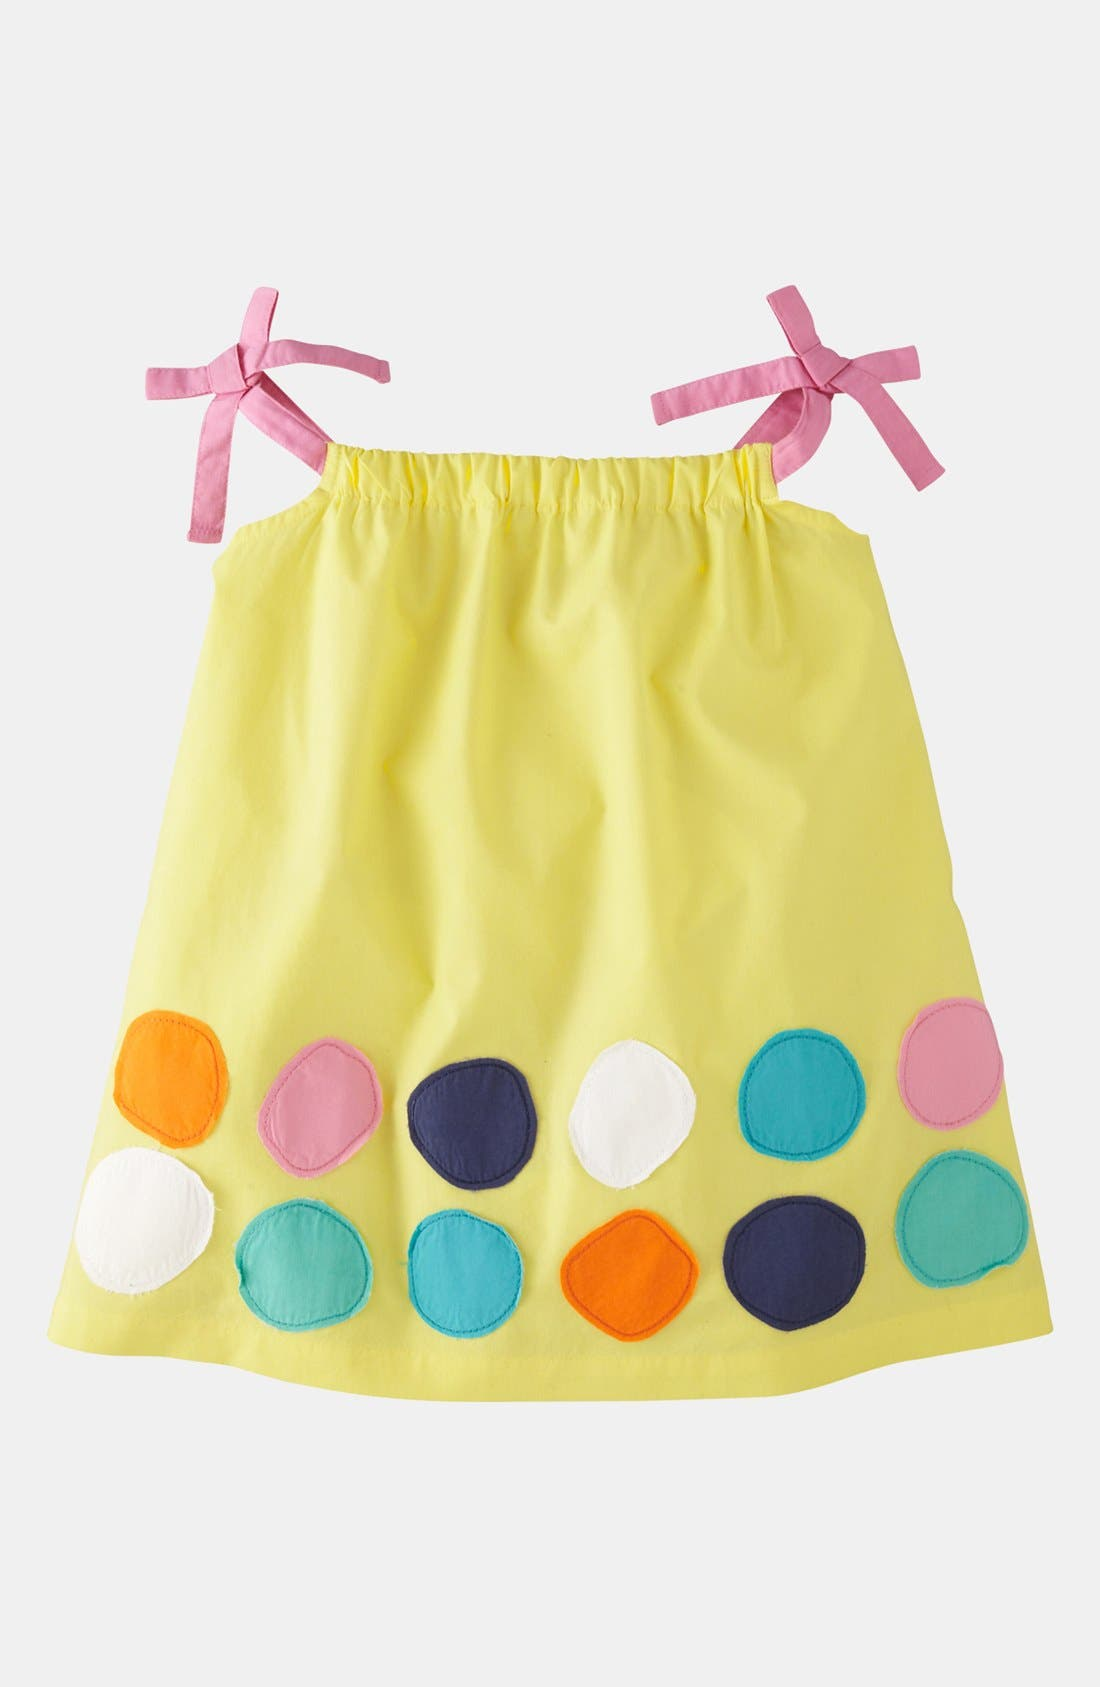 Main Image - Mini Boden 'Appliqué - Color Pop' Top (Toddler)